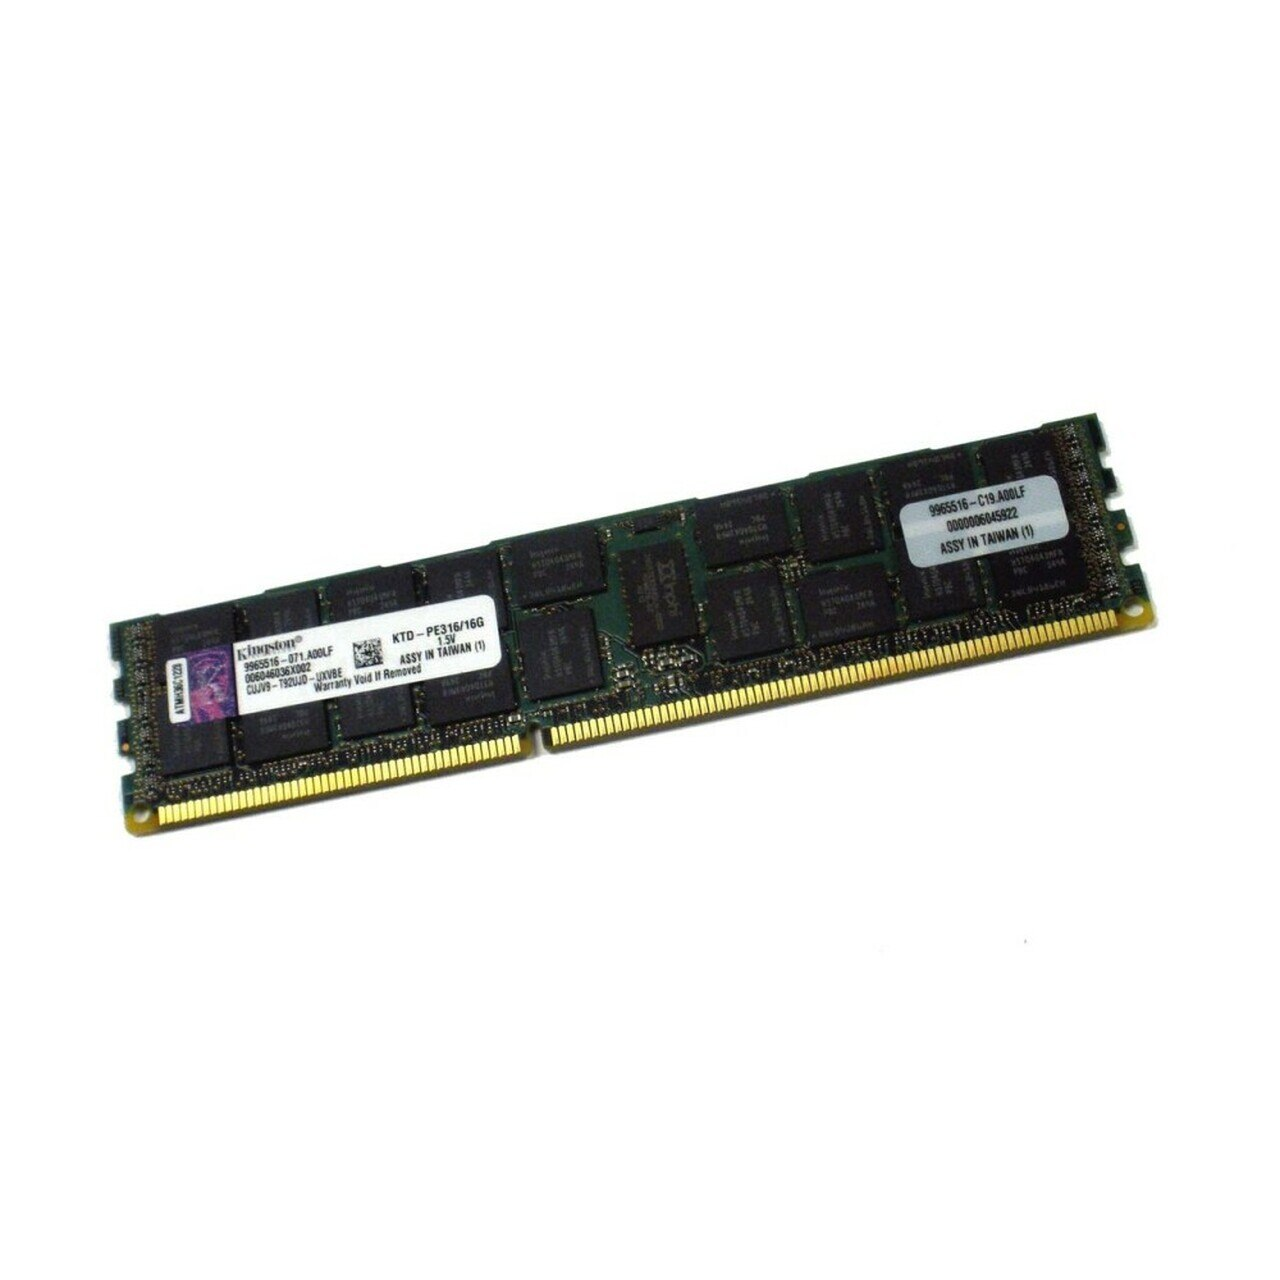 Buy & save on Kingston Server Memory RAM from your trusted partners at Flagship Technologies. Browse our extensive inventory of server spare parts below and get the best deals to maintain or upgrade your IT project or data center.